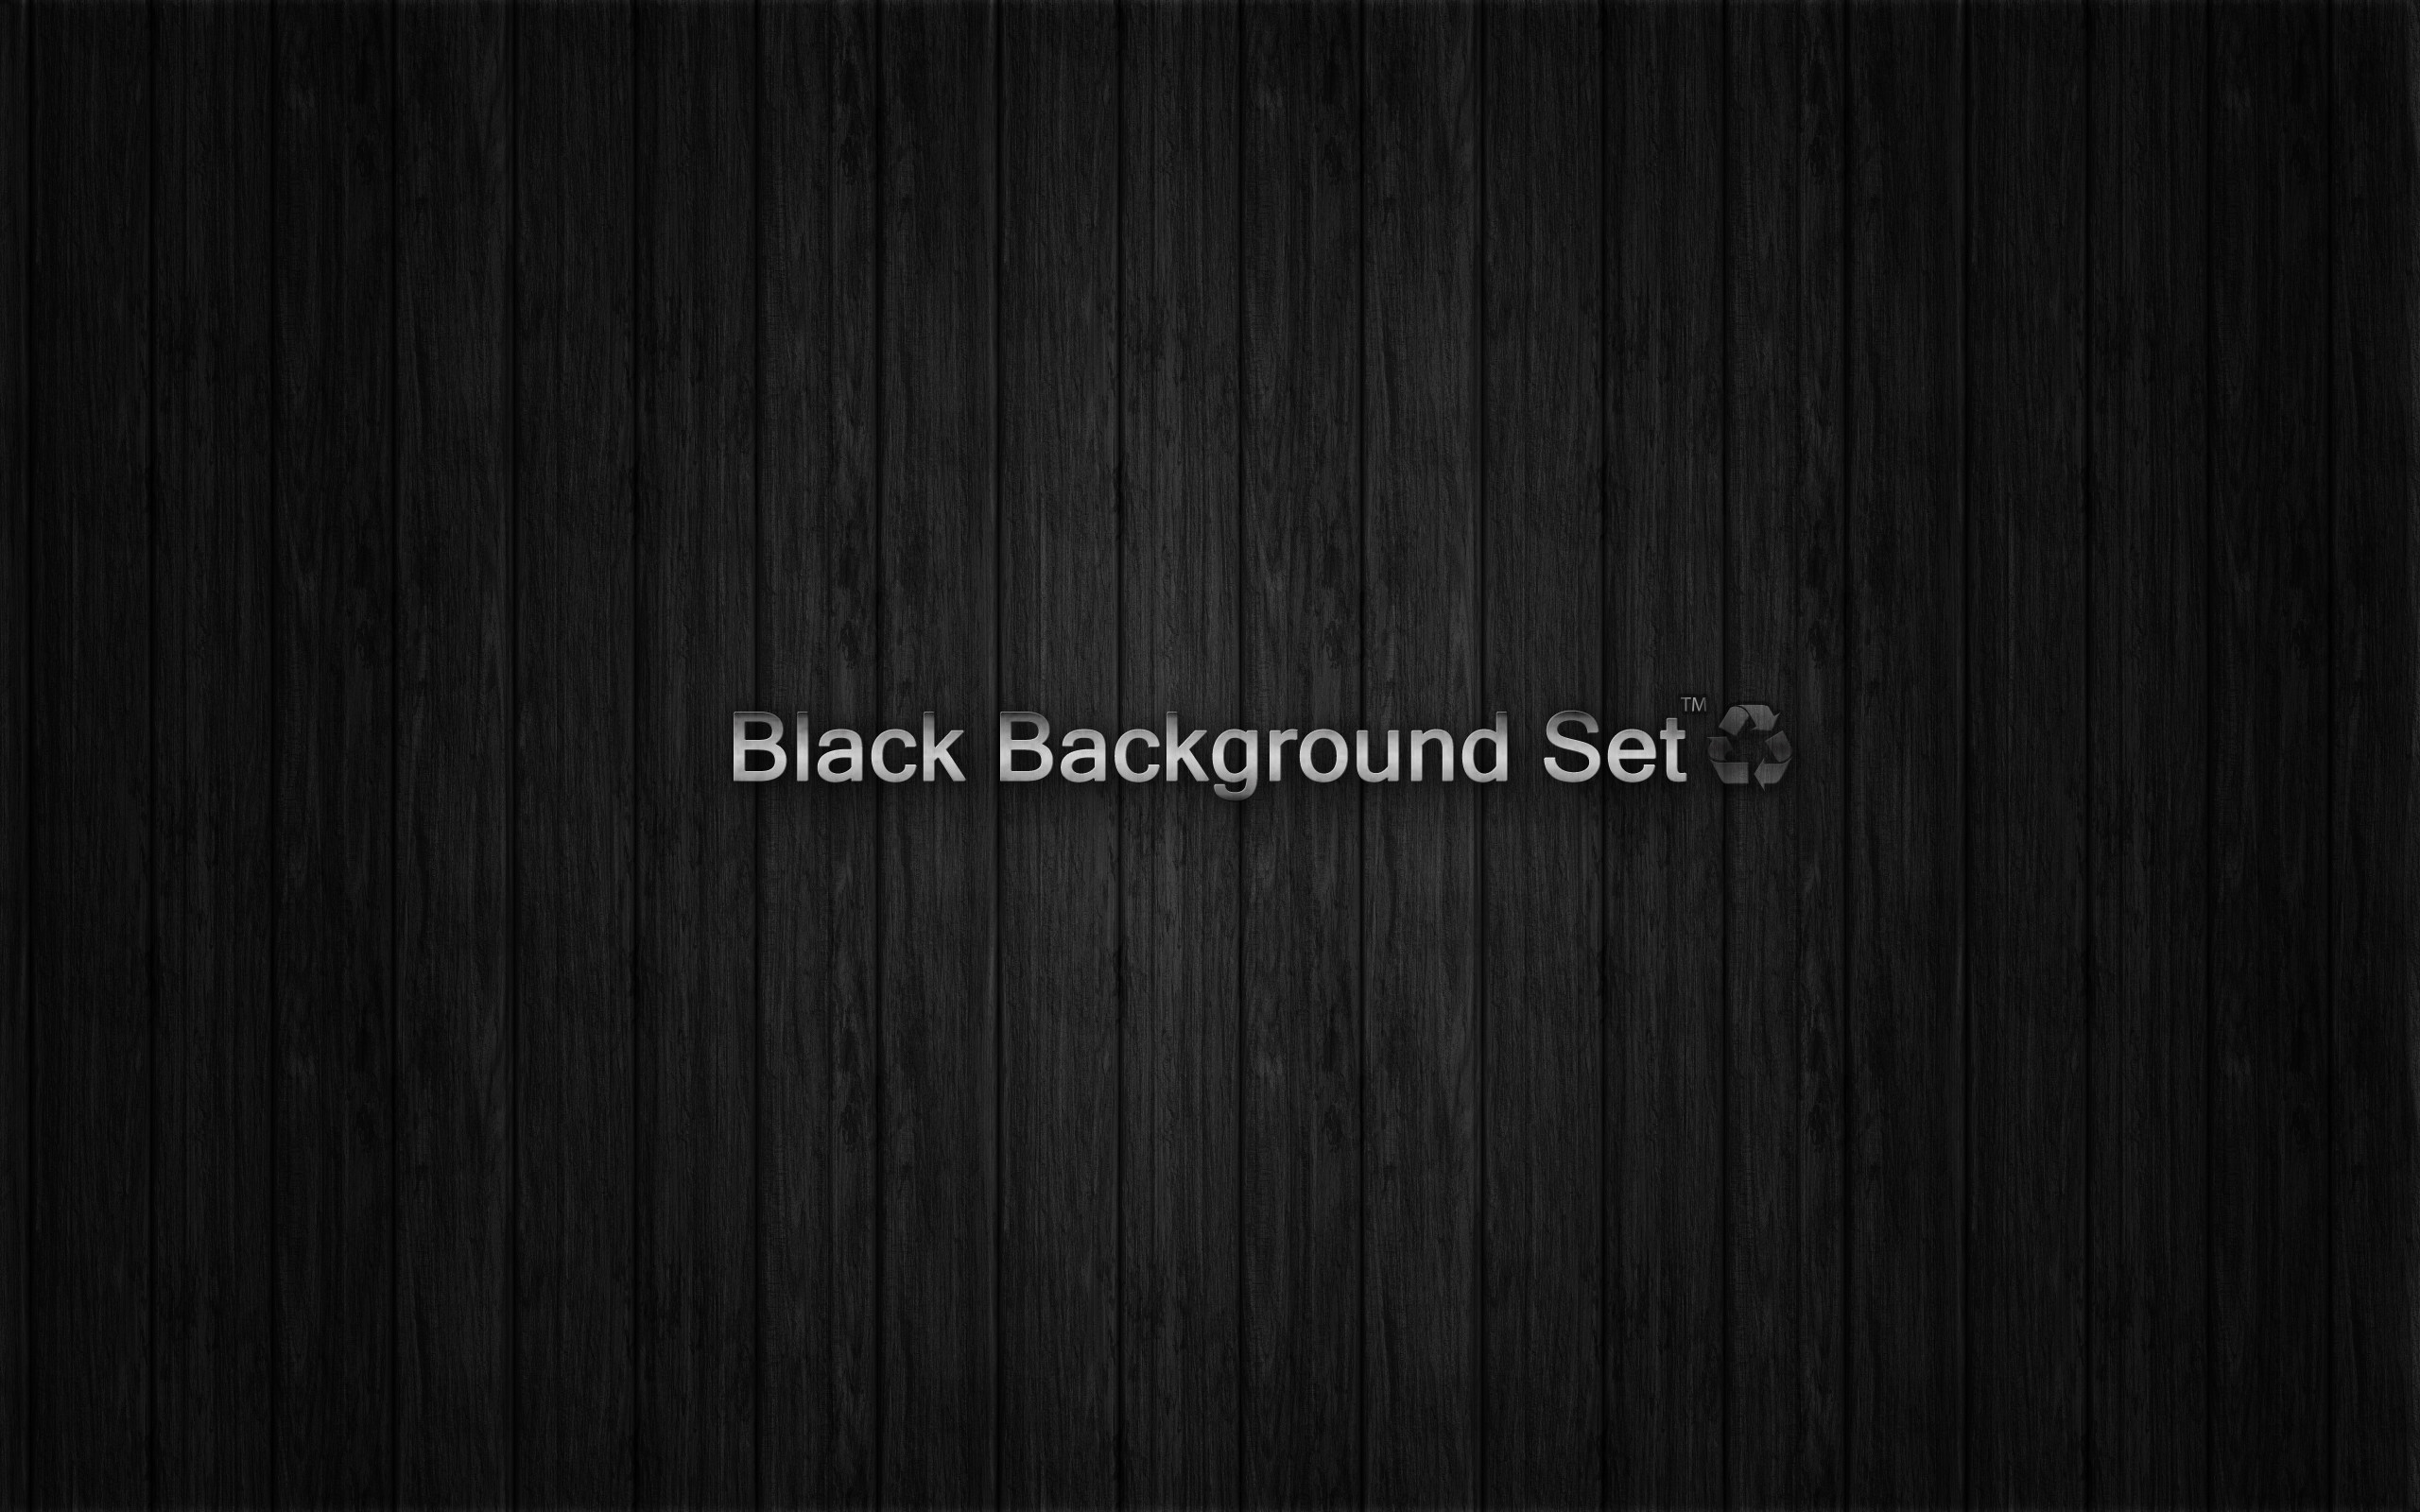 2560x1600 Black Background Wood Text HD Wallpaper